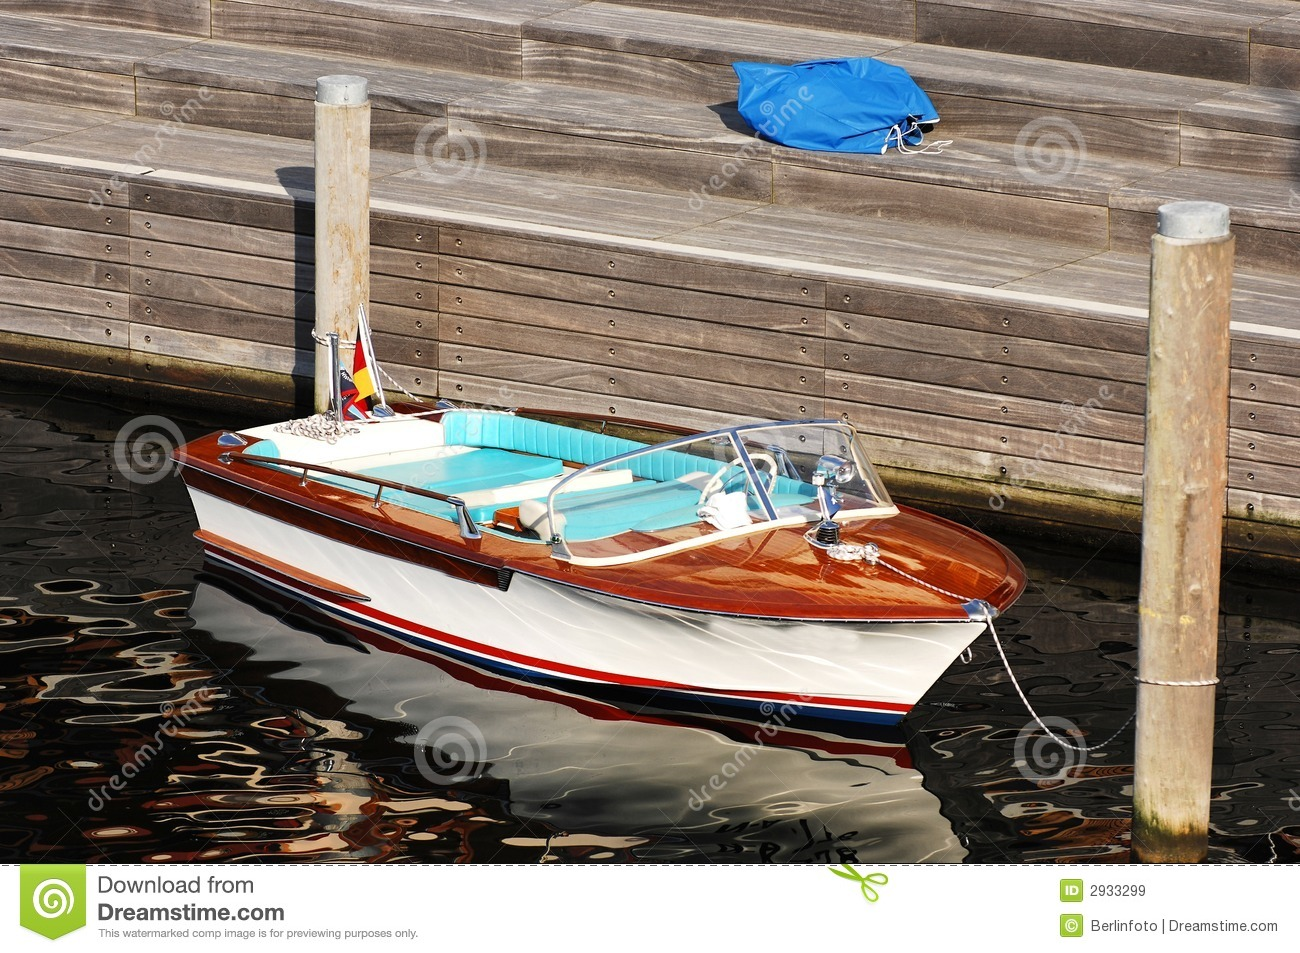 Small speed boat at pier stock image. Image of water, sunny - 2933299